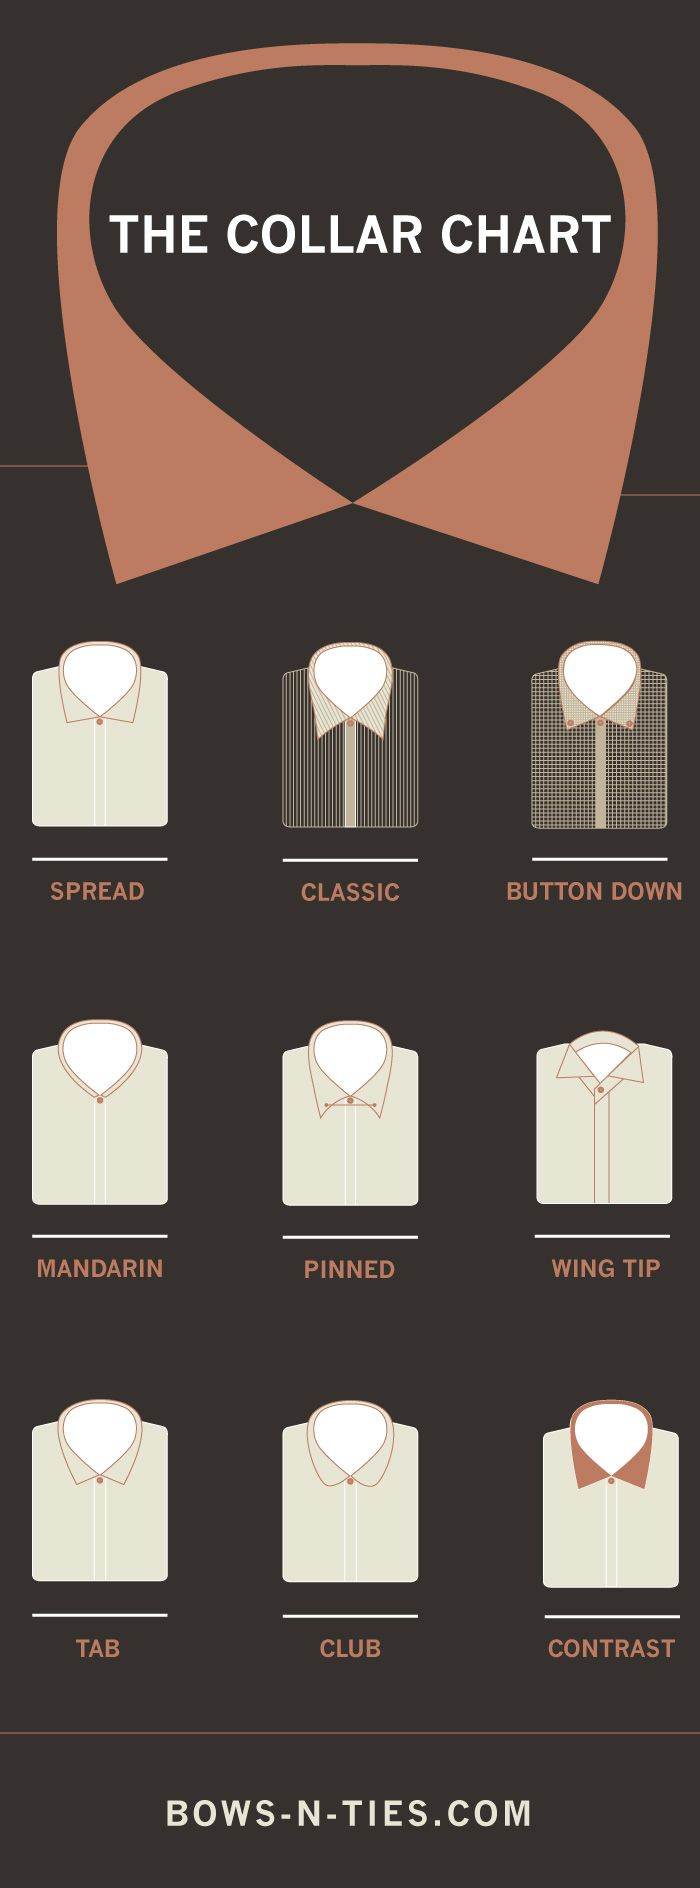 The Illustrated Guide To Menswear Shirt Collars. Do you know all nine? #maximum for #men